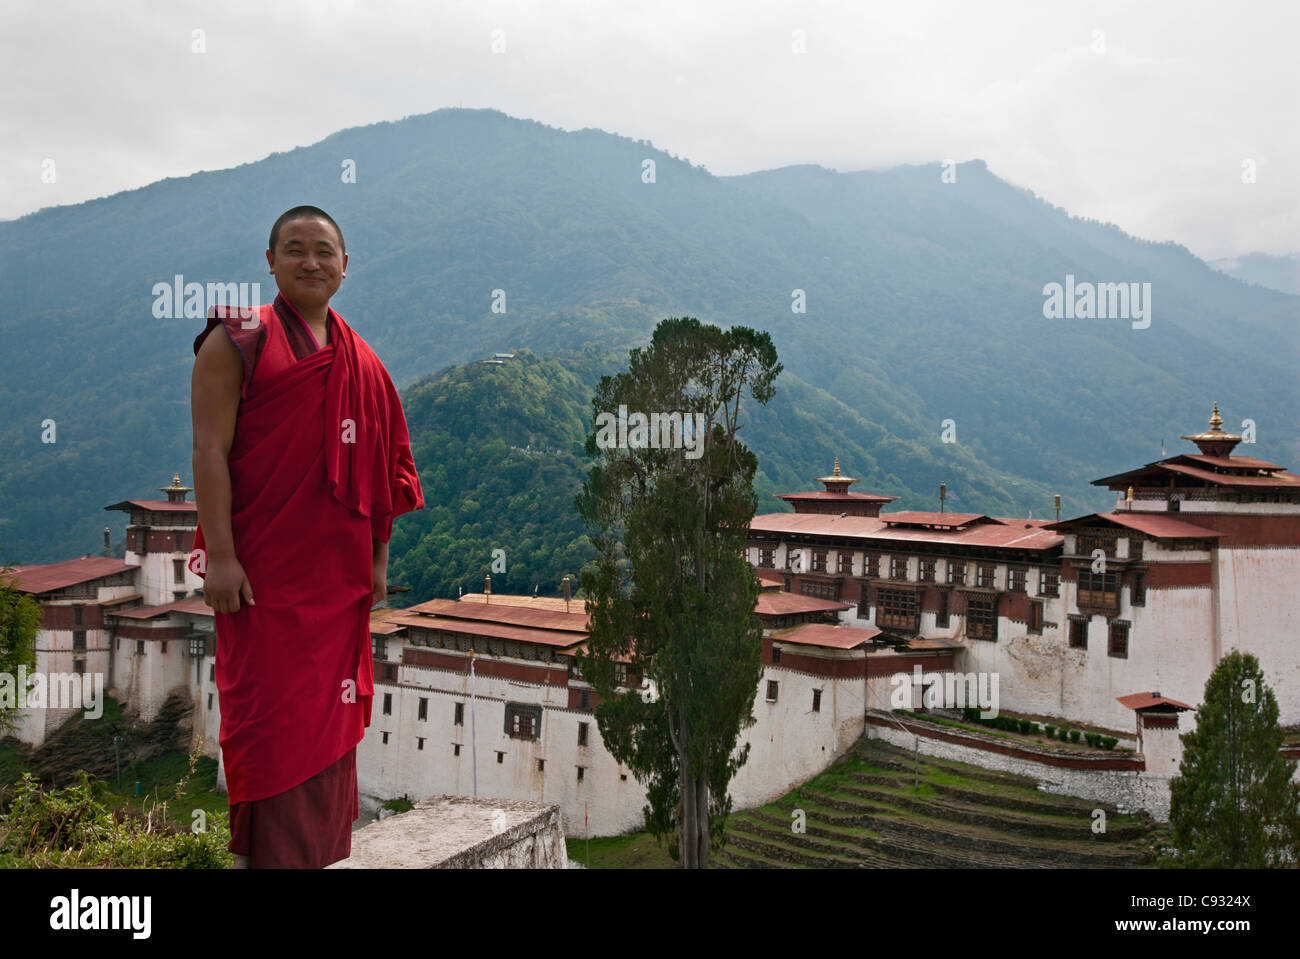 A beaming monk stands in front of Trongsa Dzong which was built in the 1640s. - Stock Image